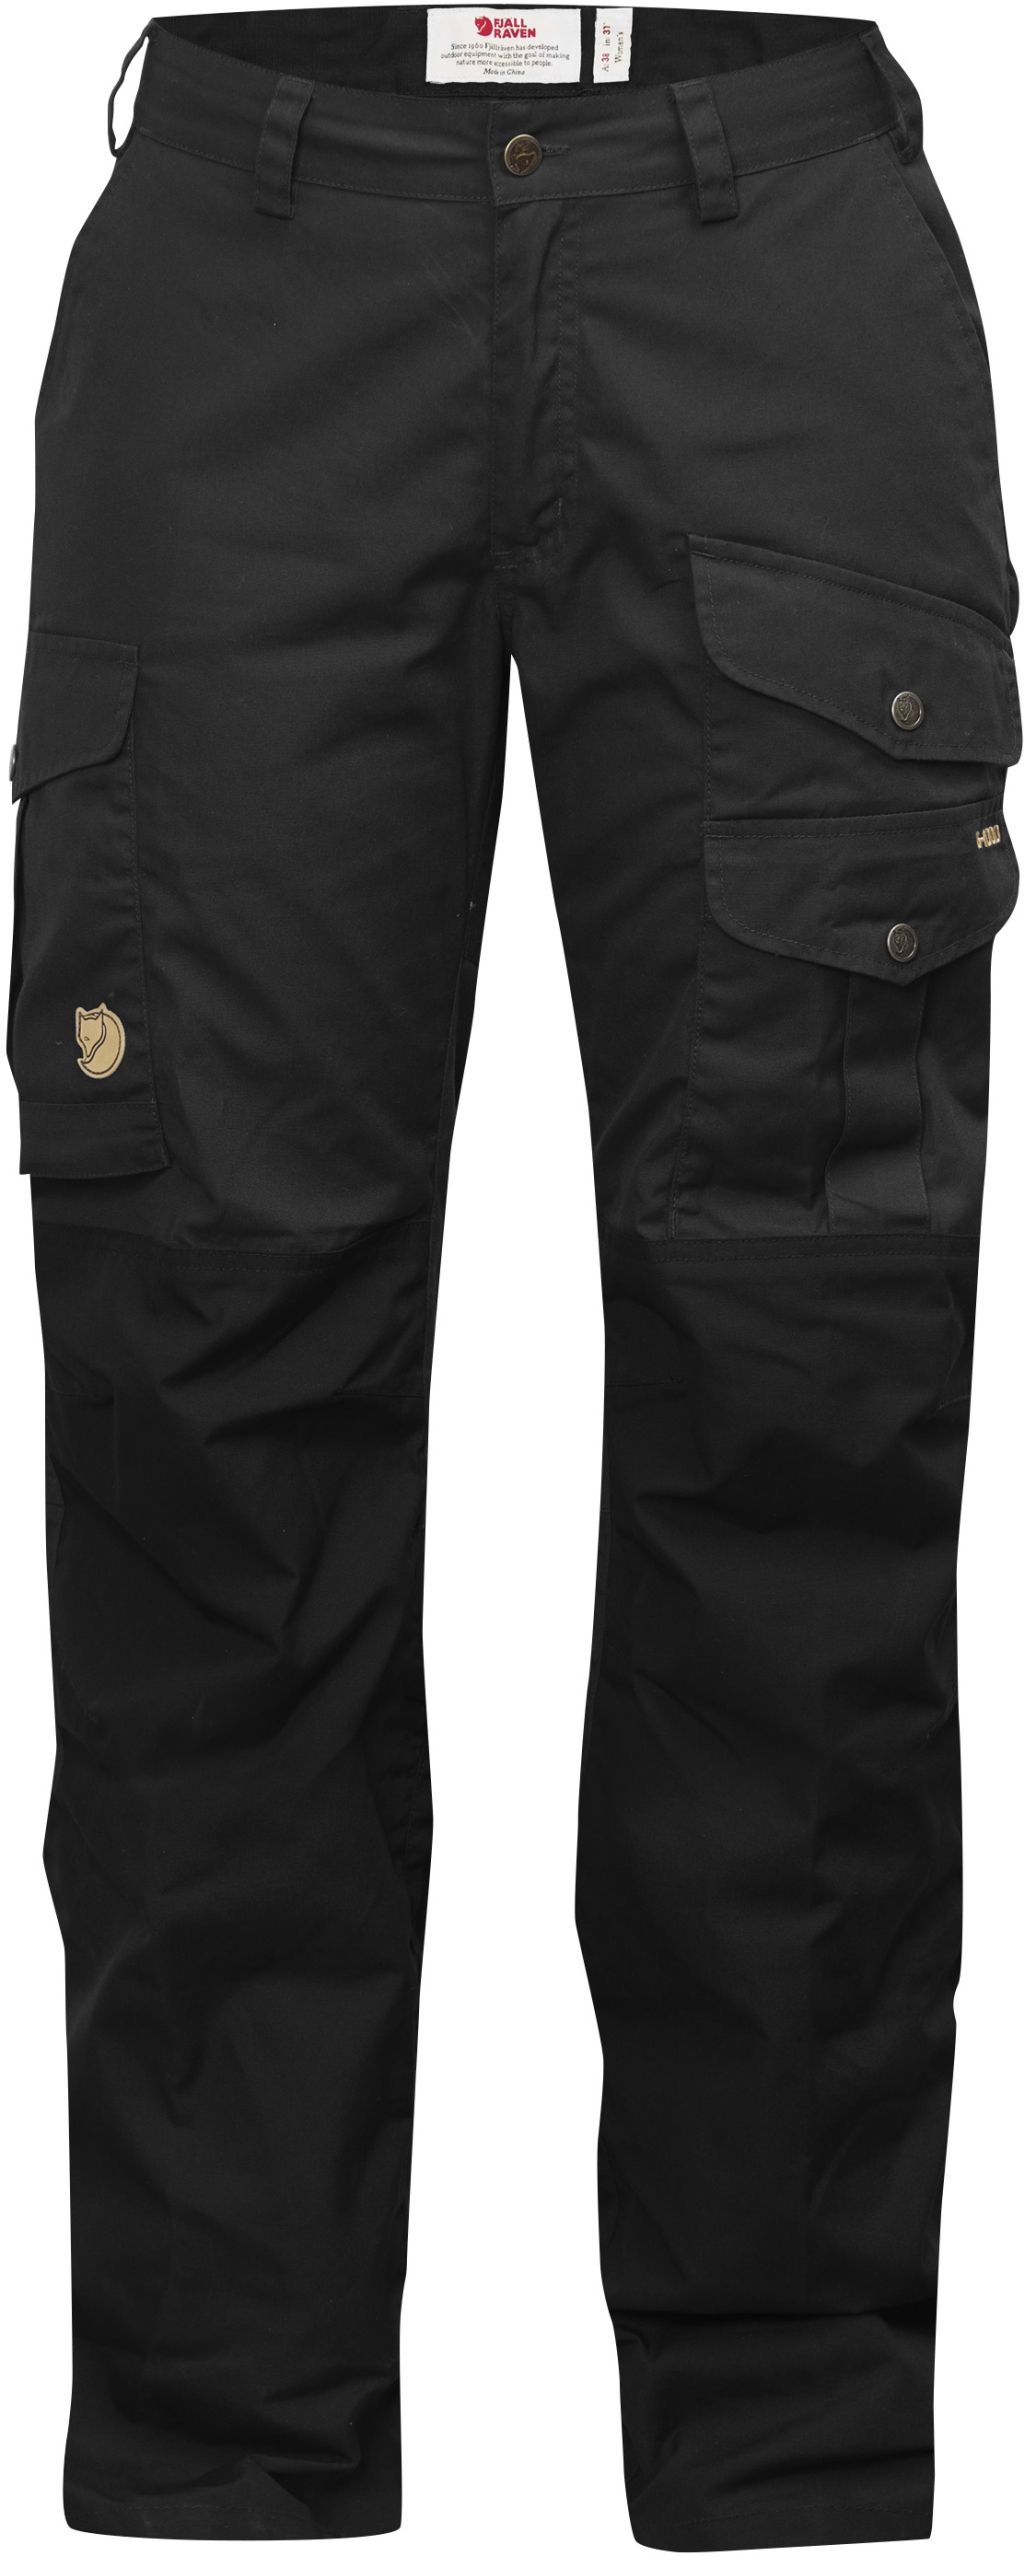 FjallRaven Barents Pro Trousers Curved W Black-Black-30